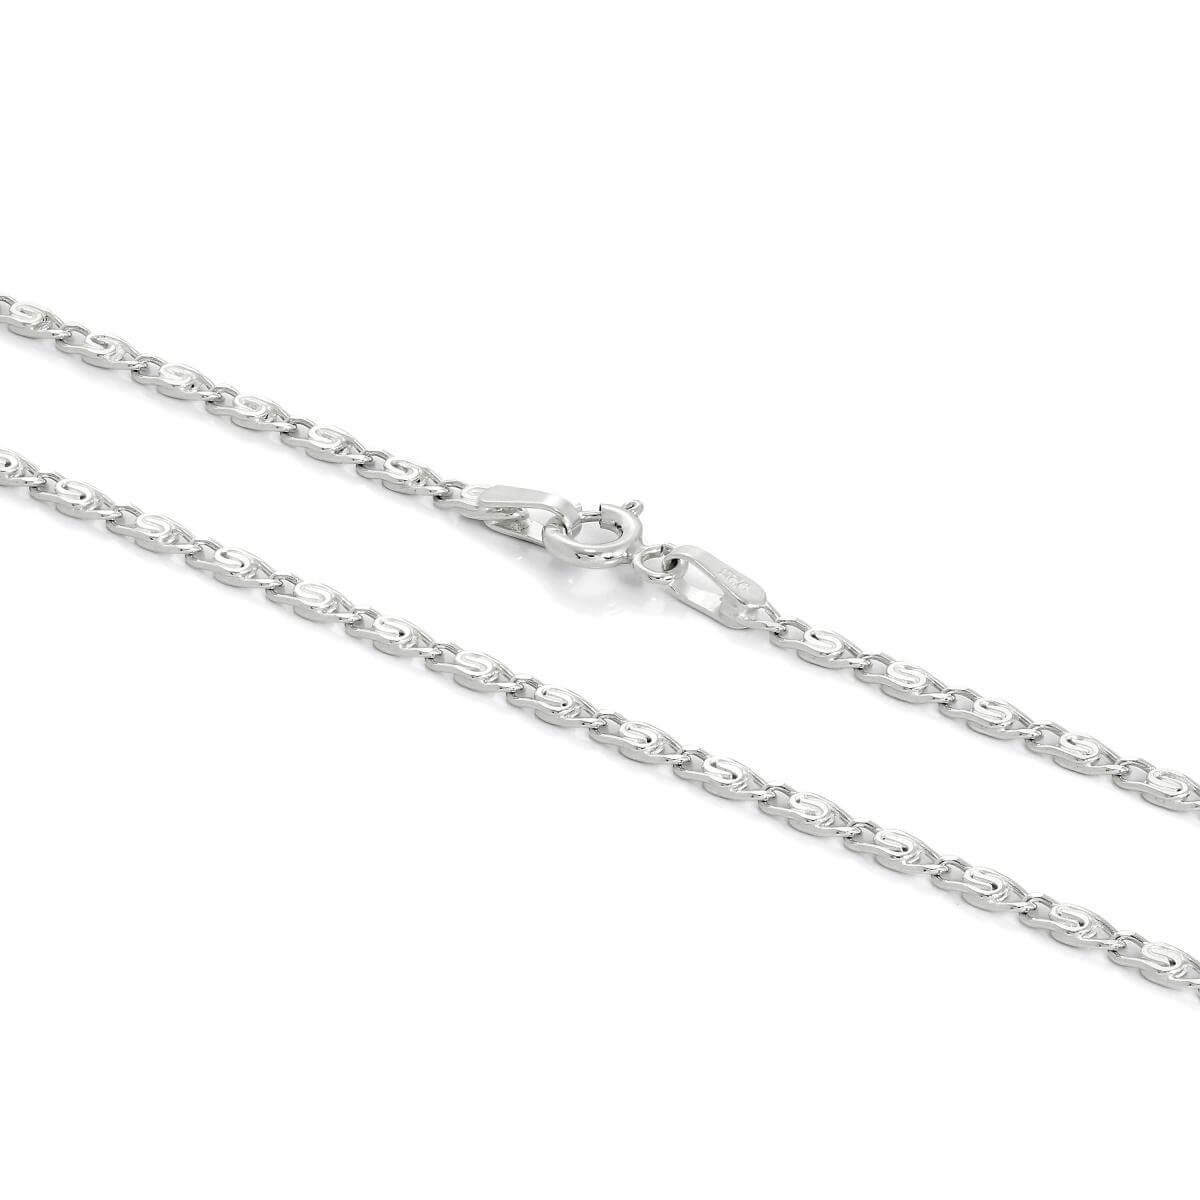 Sterling Silver 2mm S Curb Chain 16 - 24 Inches